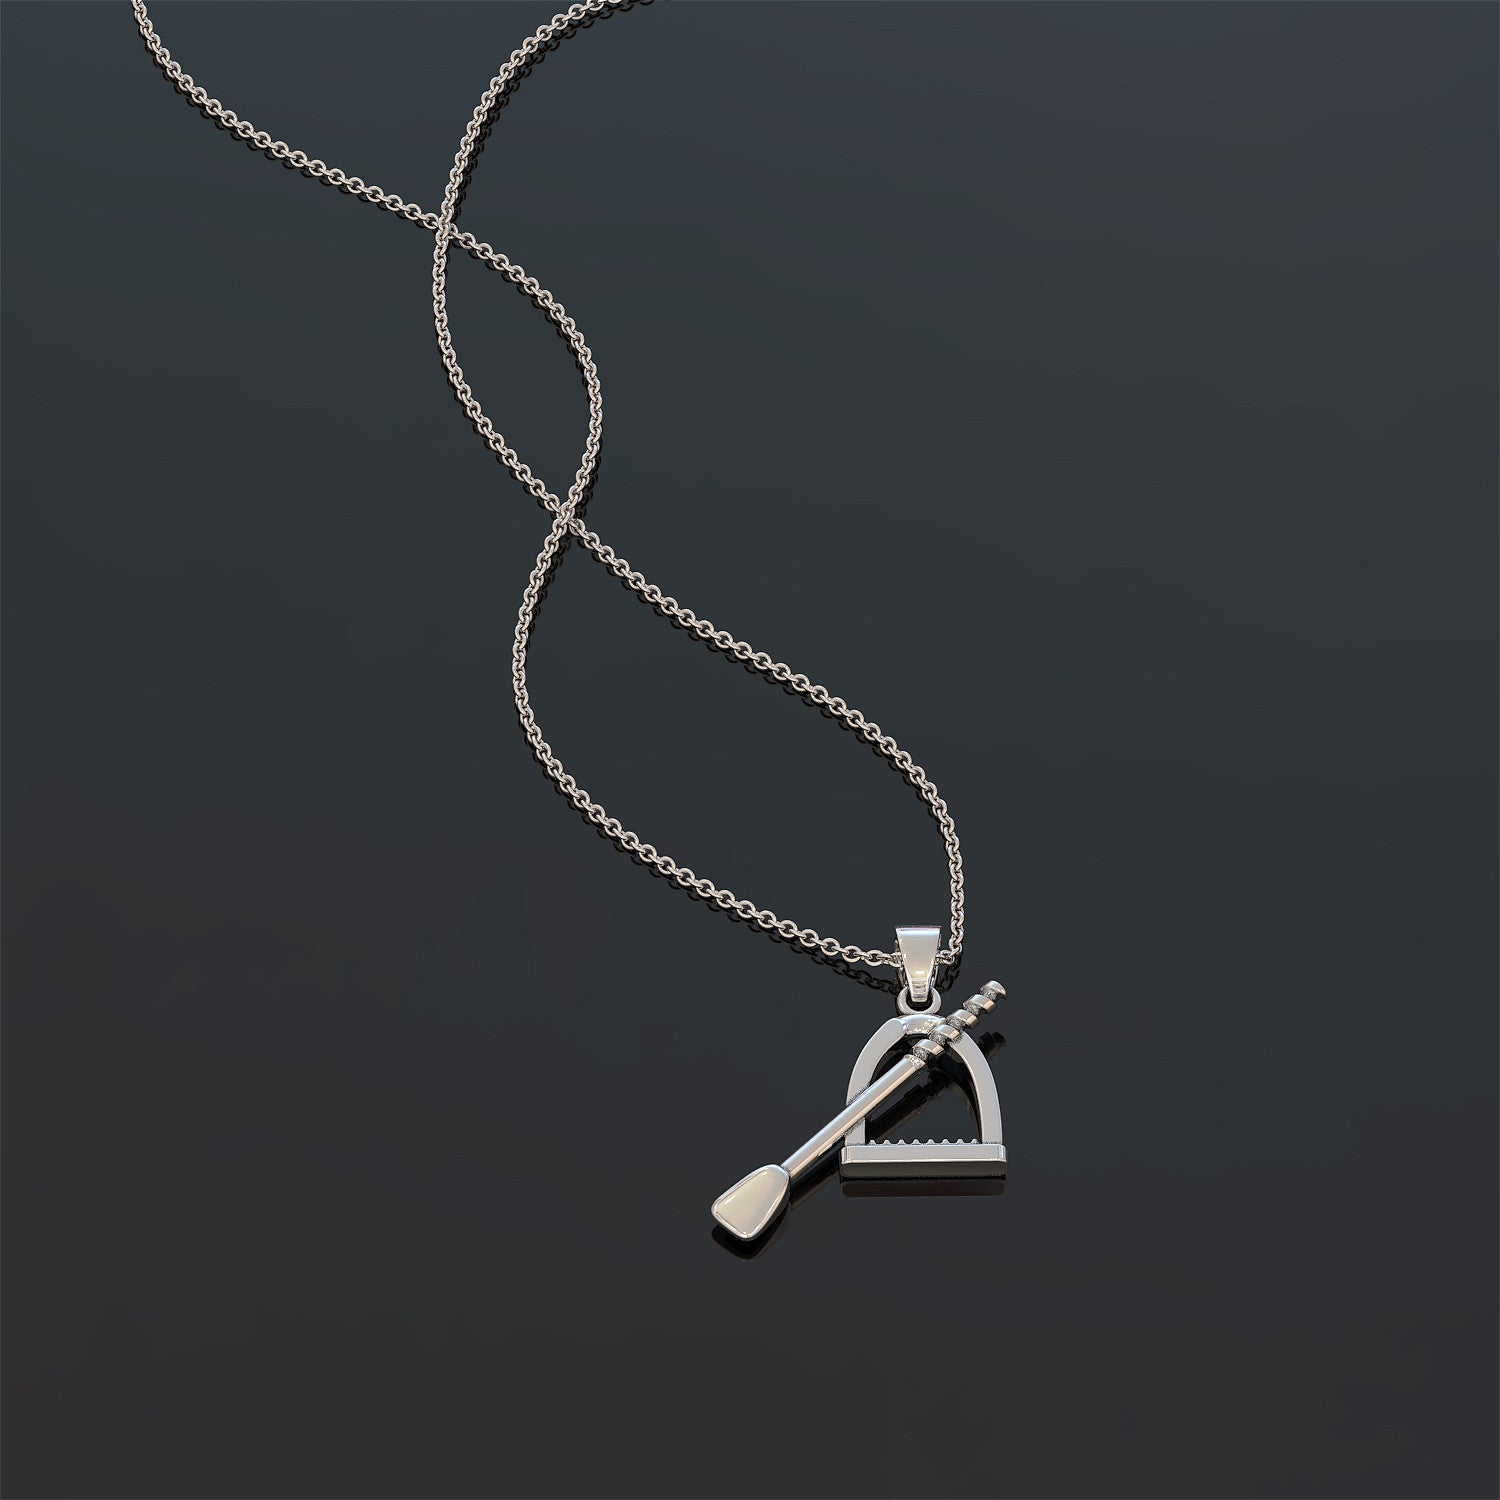 Horse Riding - Necklace - Strictly Limited Edition